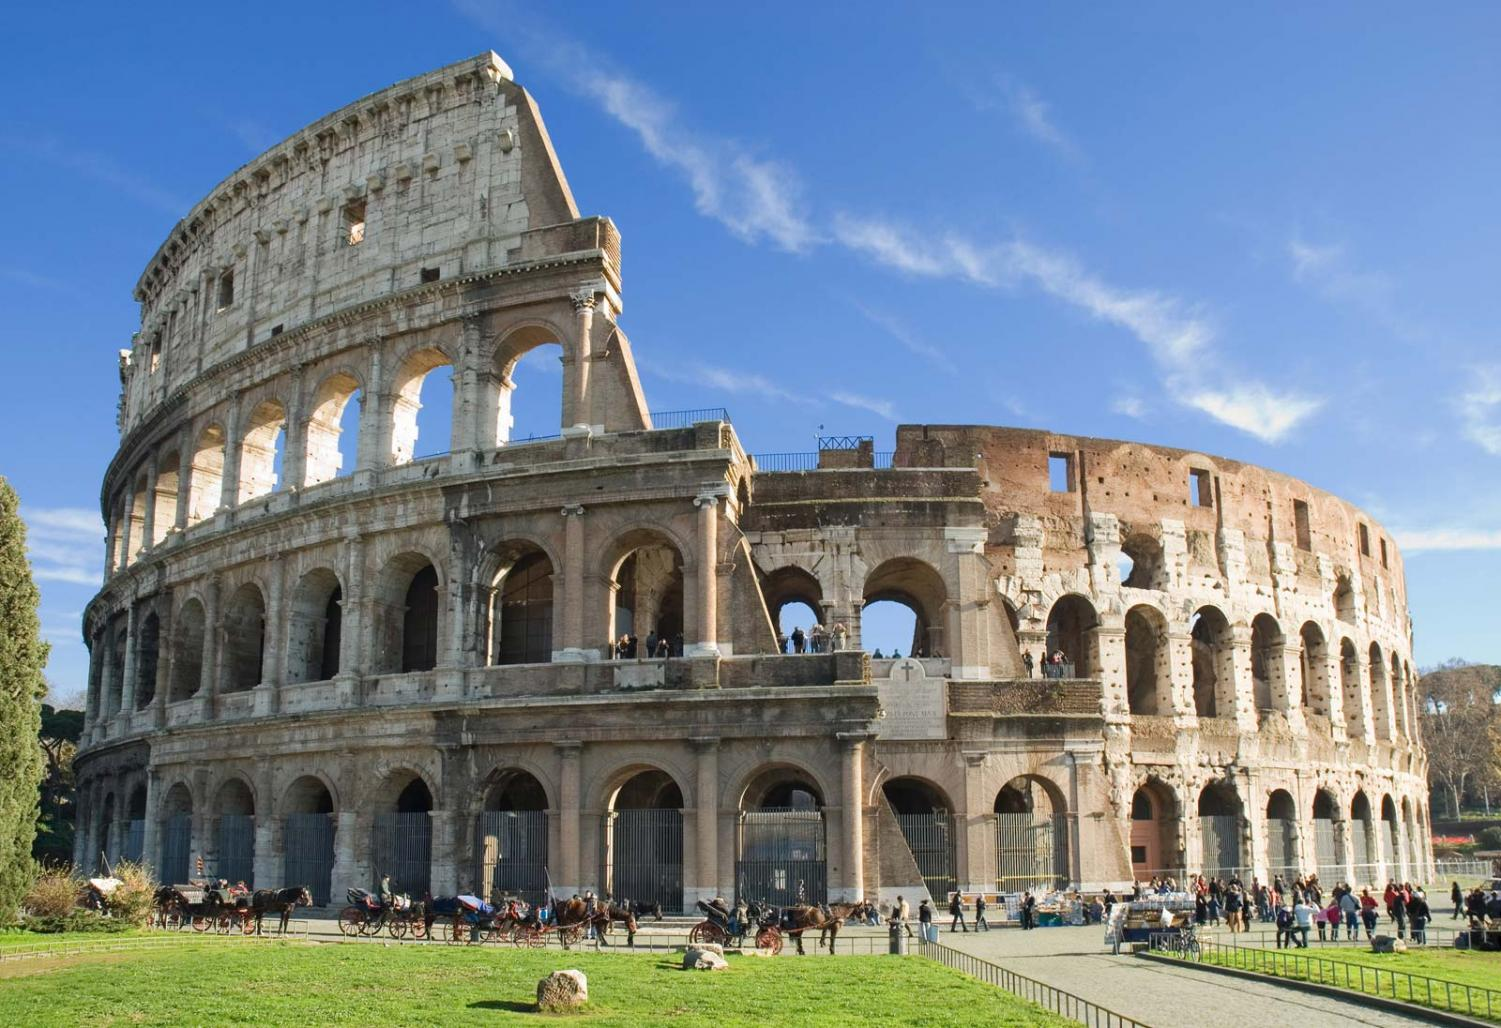 The Roman Colosseum is only one of the locations that DCHS students will be visiting this Spring Break.